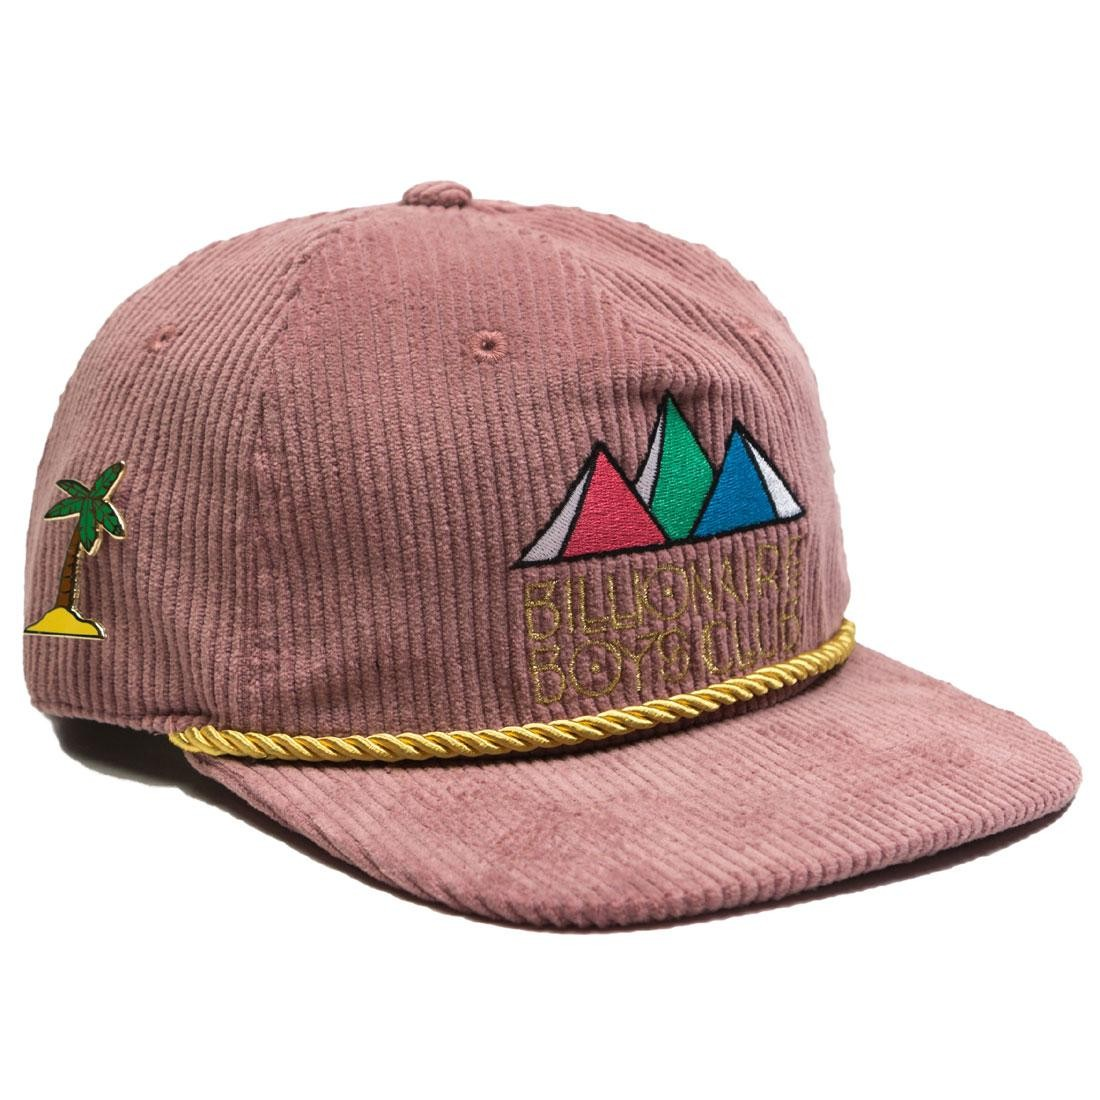 Billionaire Boys Club BB Pyramids Snapback Cap purple bordeax lavender 2892a306c16